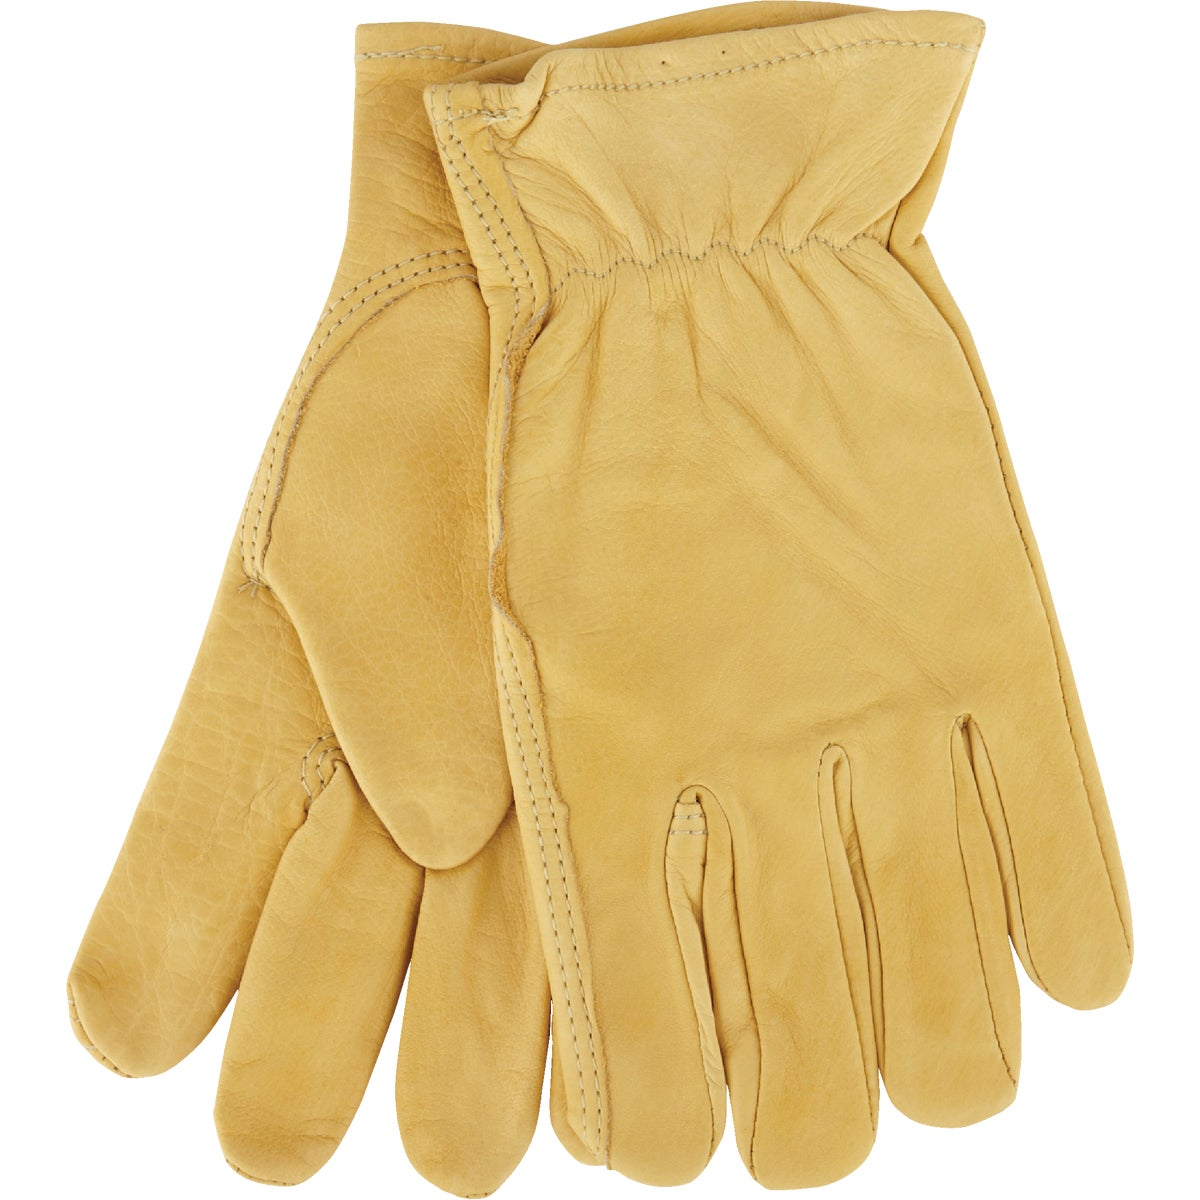 MED LEATHER GLOVE - 710270 by Do it Best